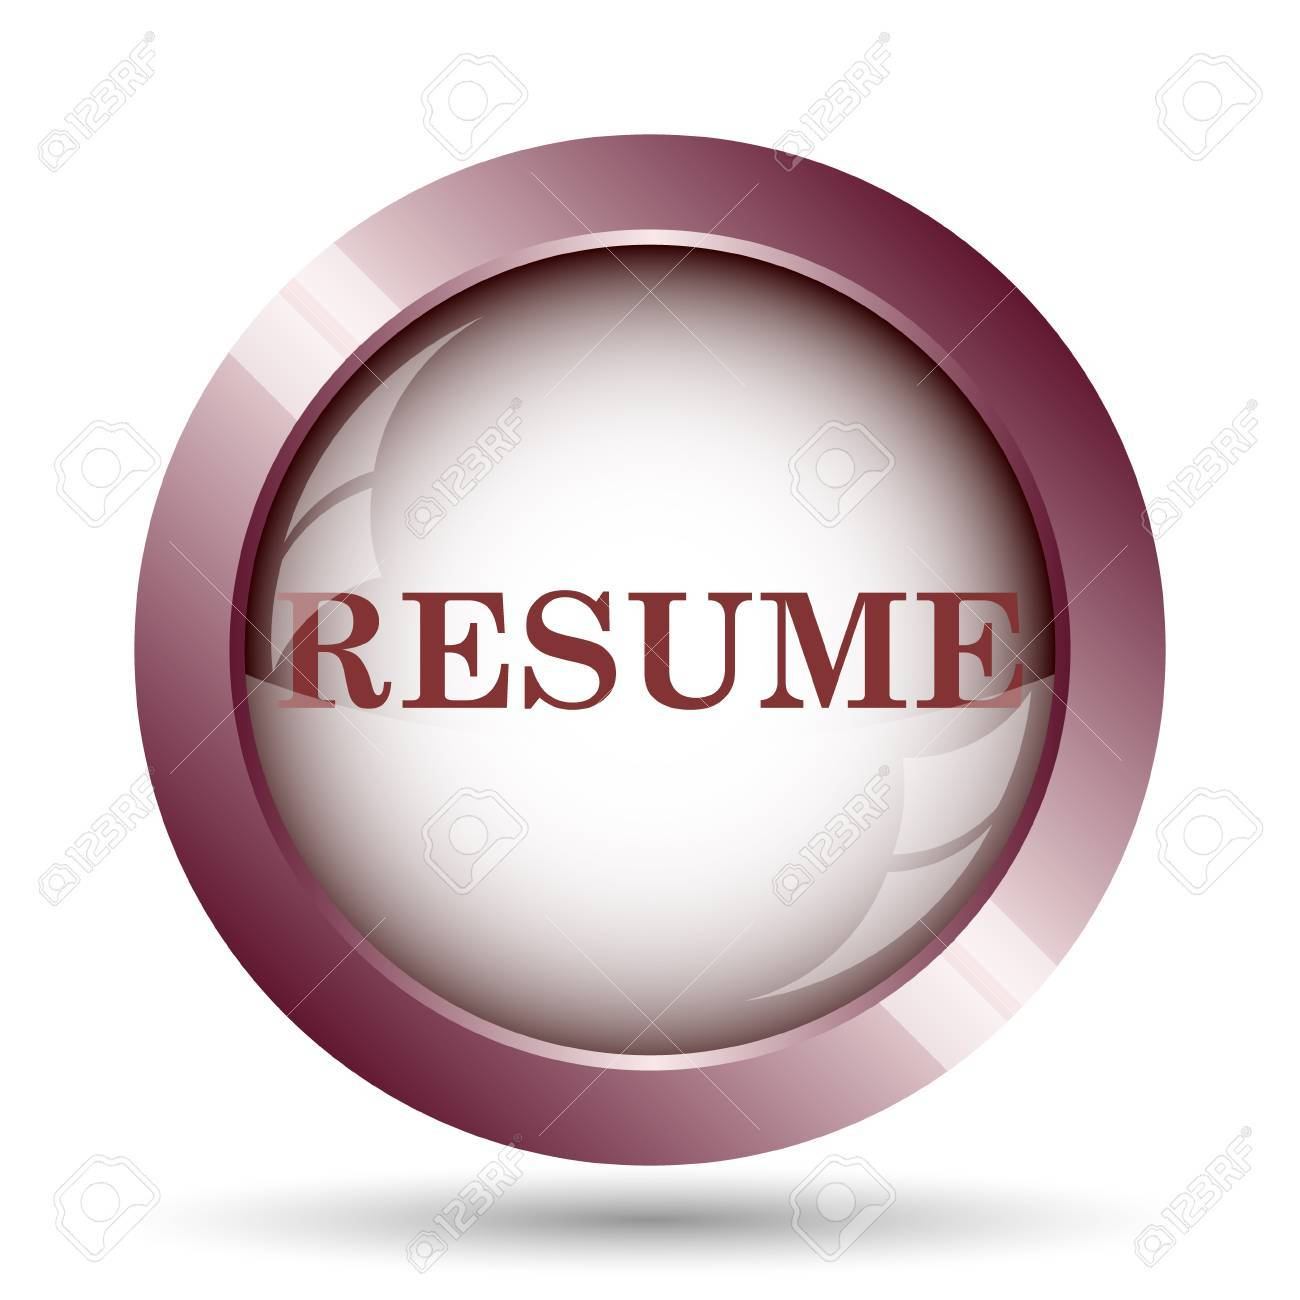 resume icon internet button on white background stock photo resume icon internet button on white background stock photo 49232801